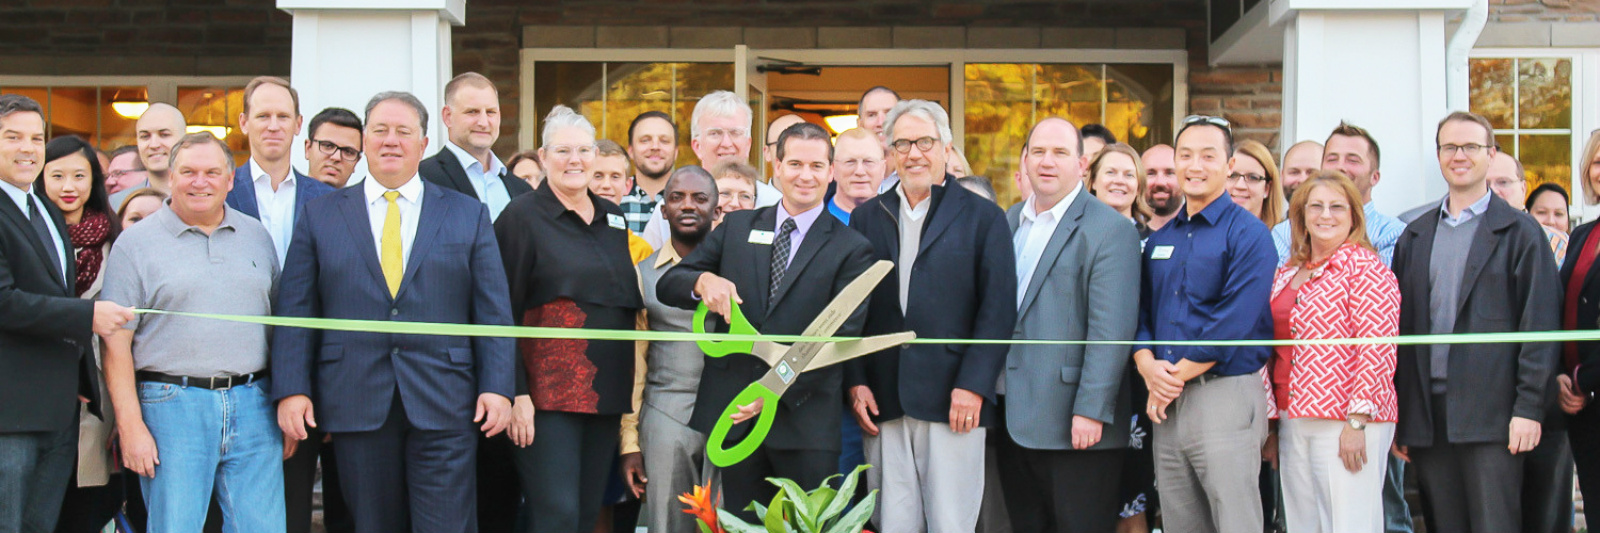 Edencrest Ribbon Cutting